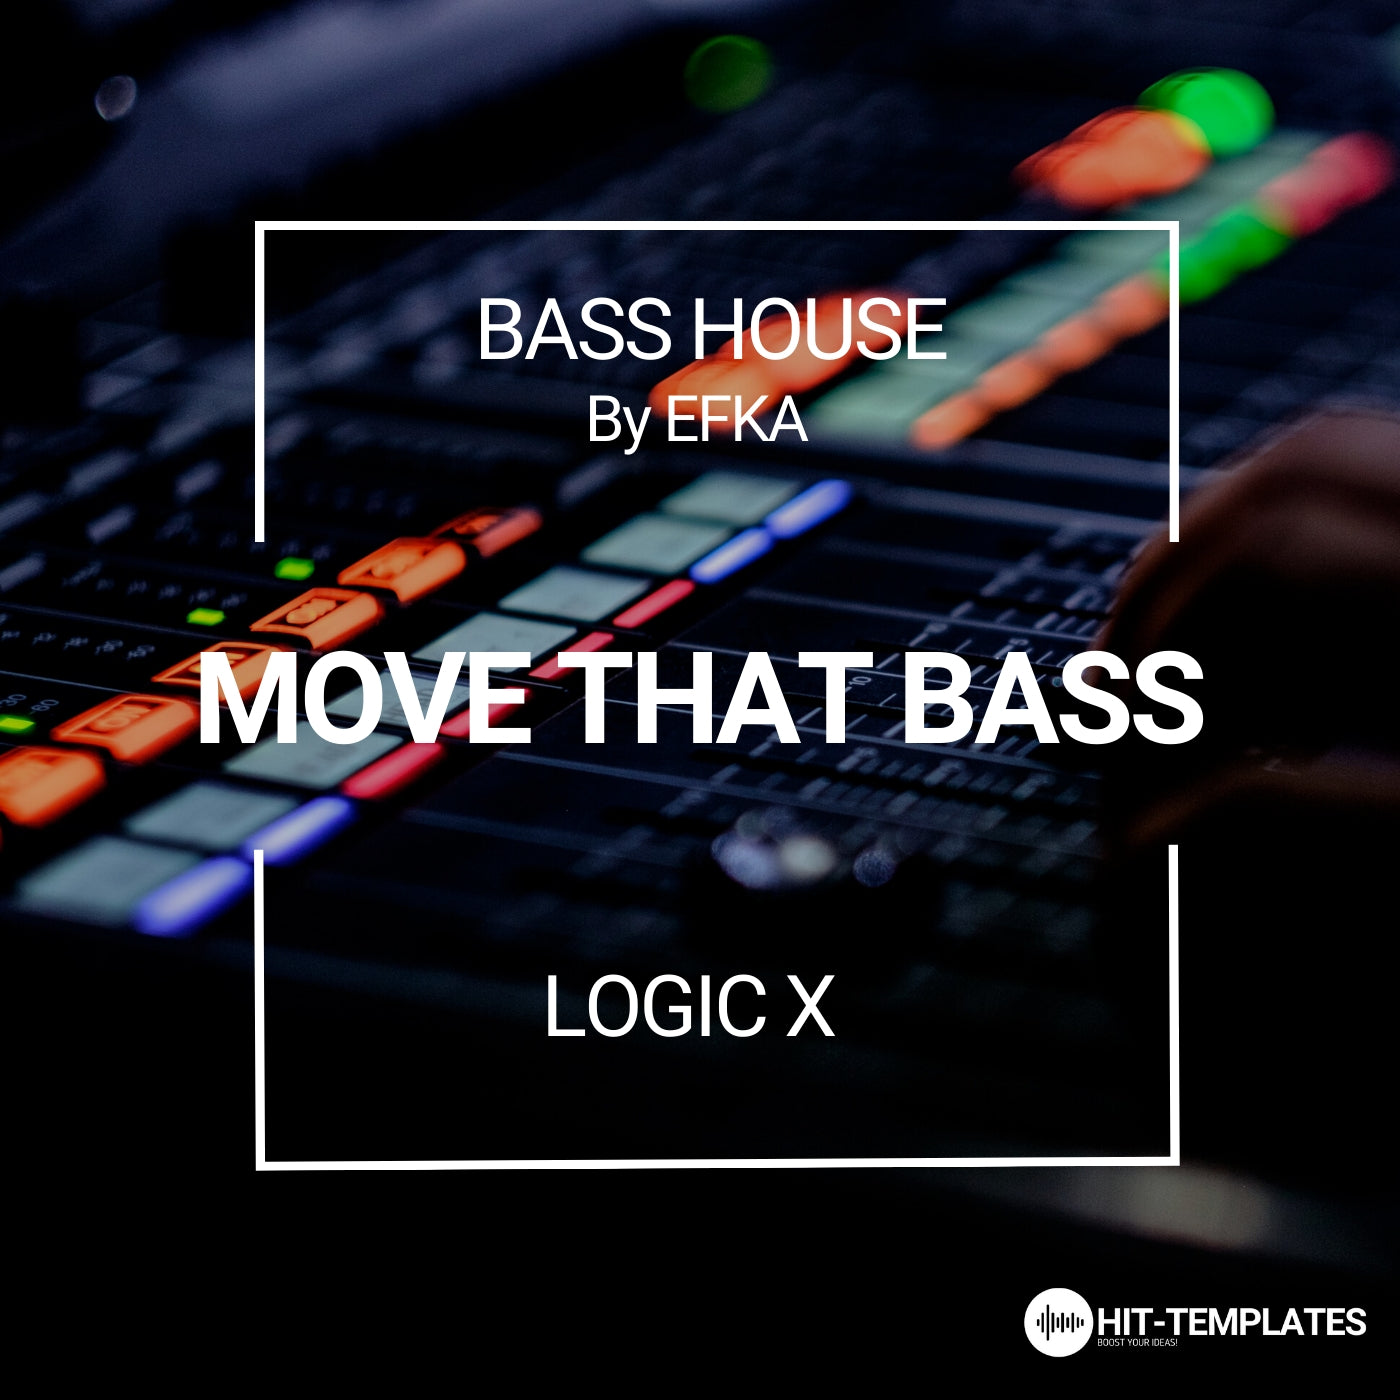 MOVE THAT BASS - BASS HOUSE